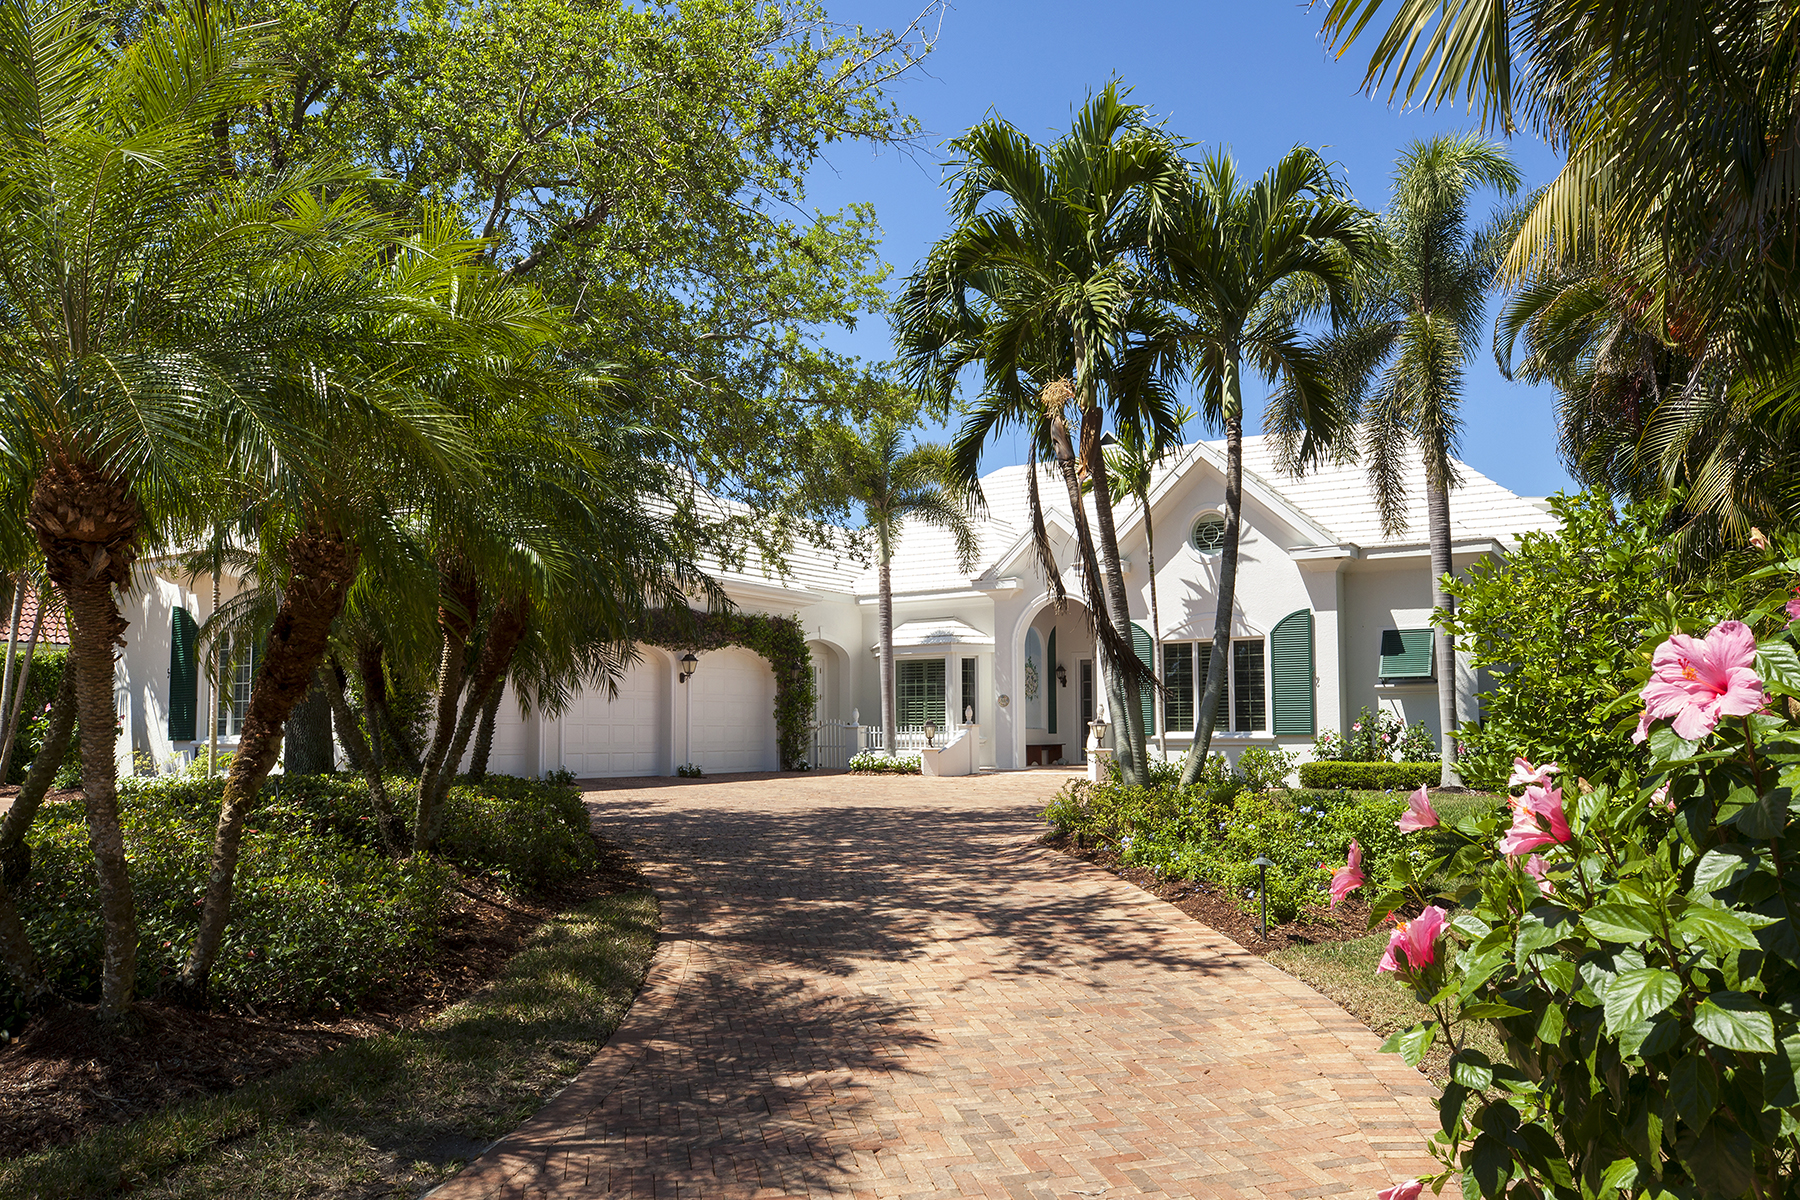 Single Family Home for Sale at PORT ROYAL 1300 Spyglass Ln, Naples, Florida 34102 United States